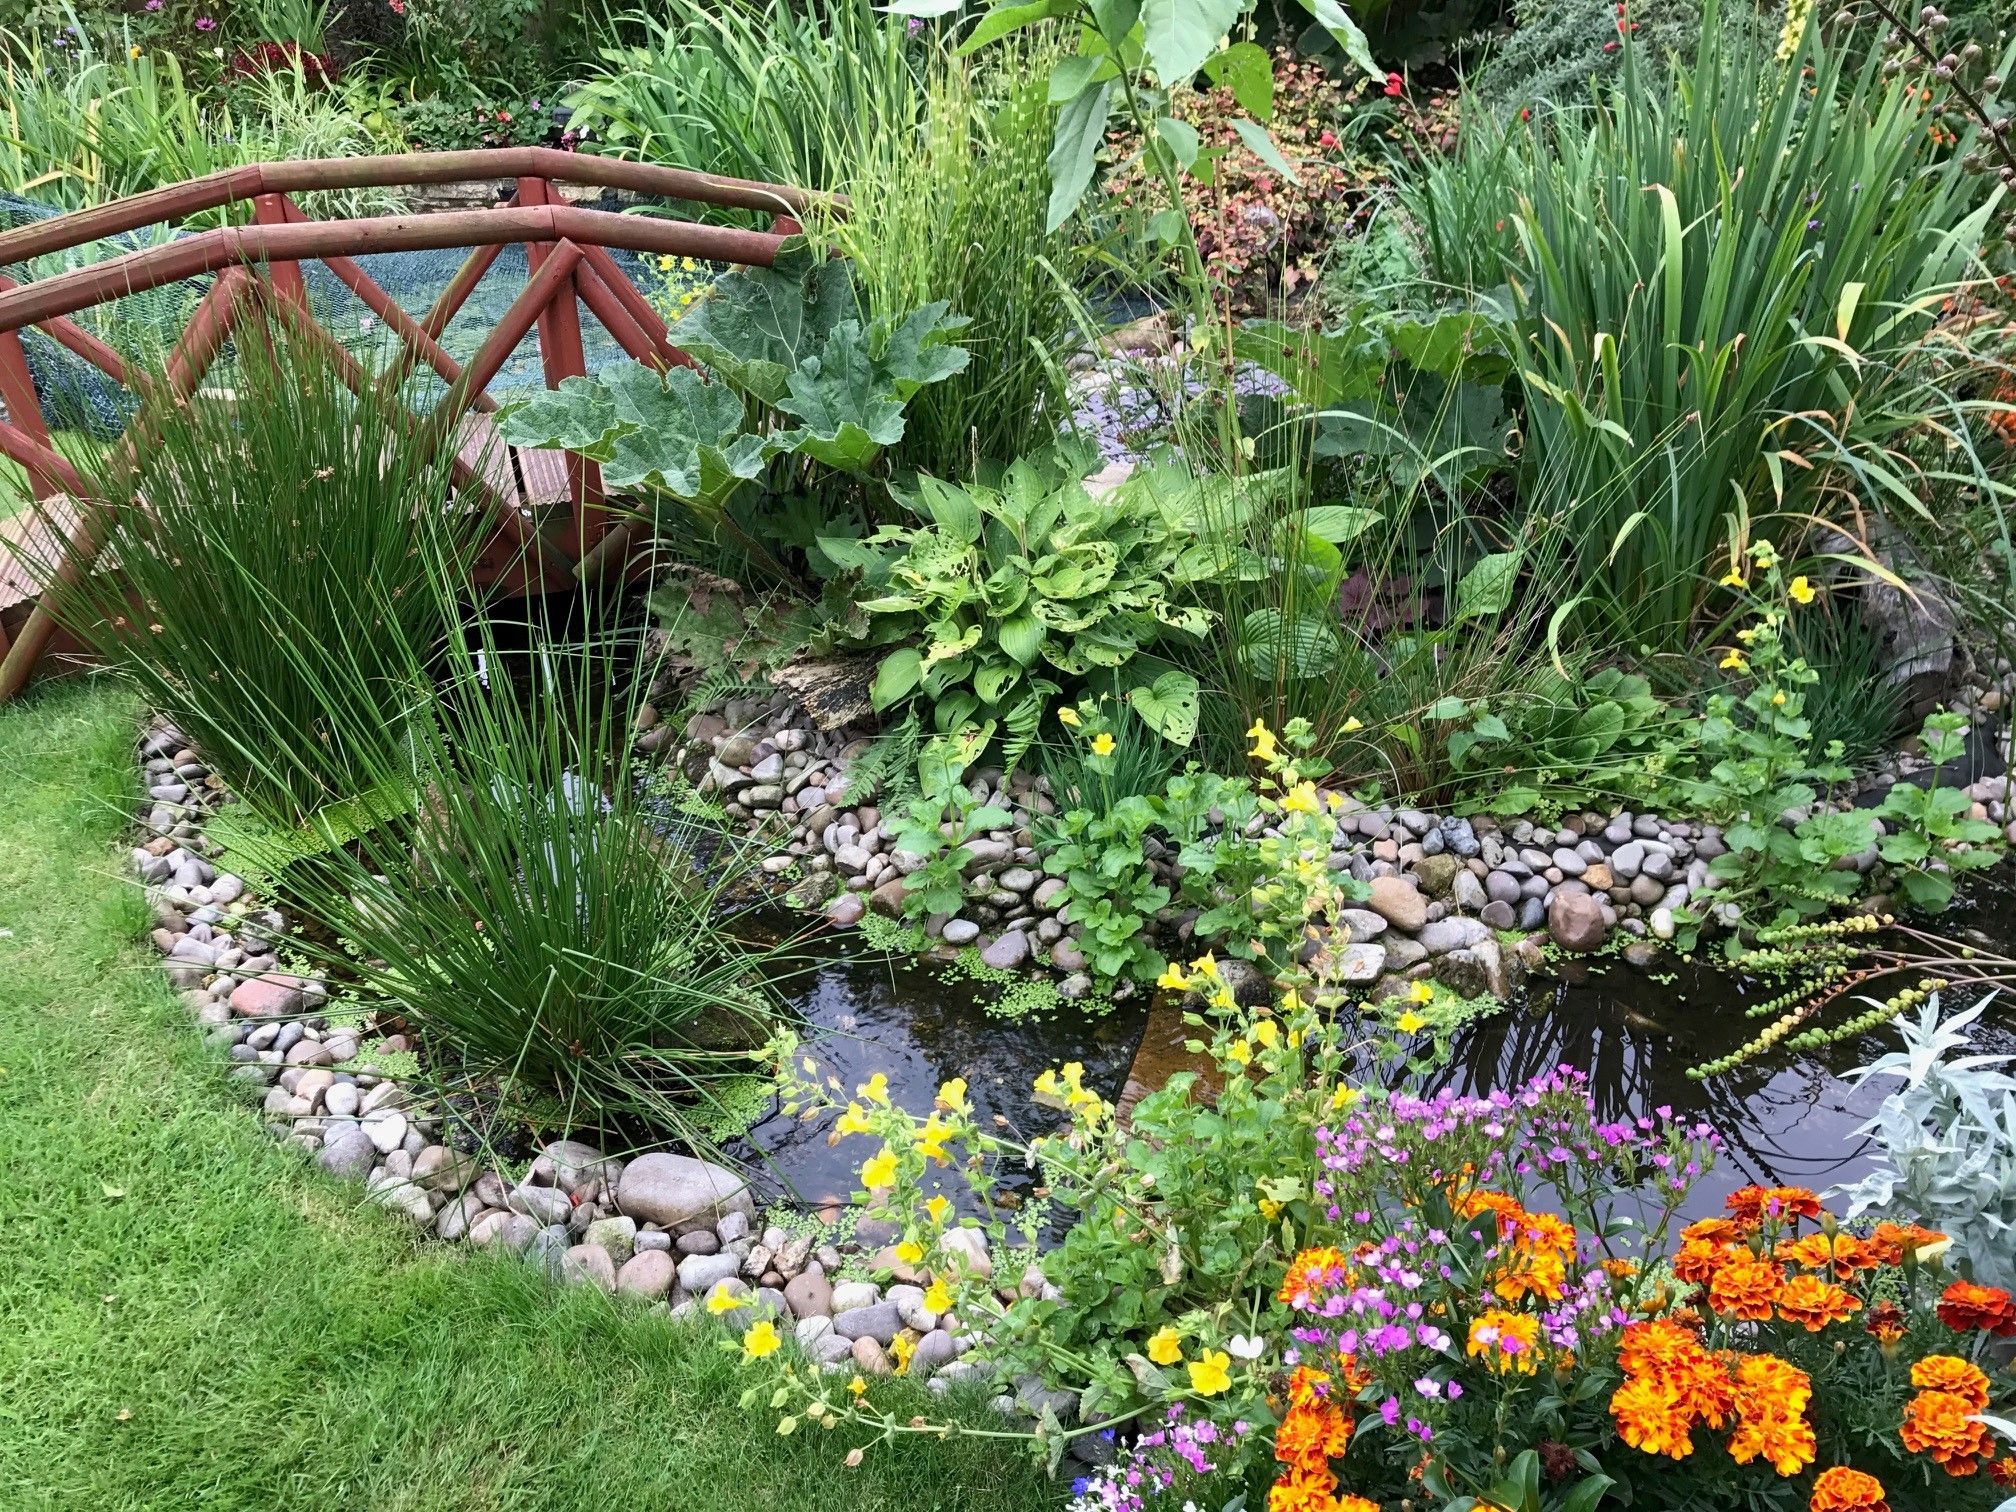 How To Build Your Own Pond In Your Garden Large Ponds To Container Ponds